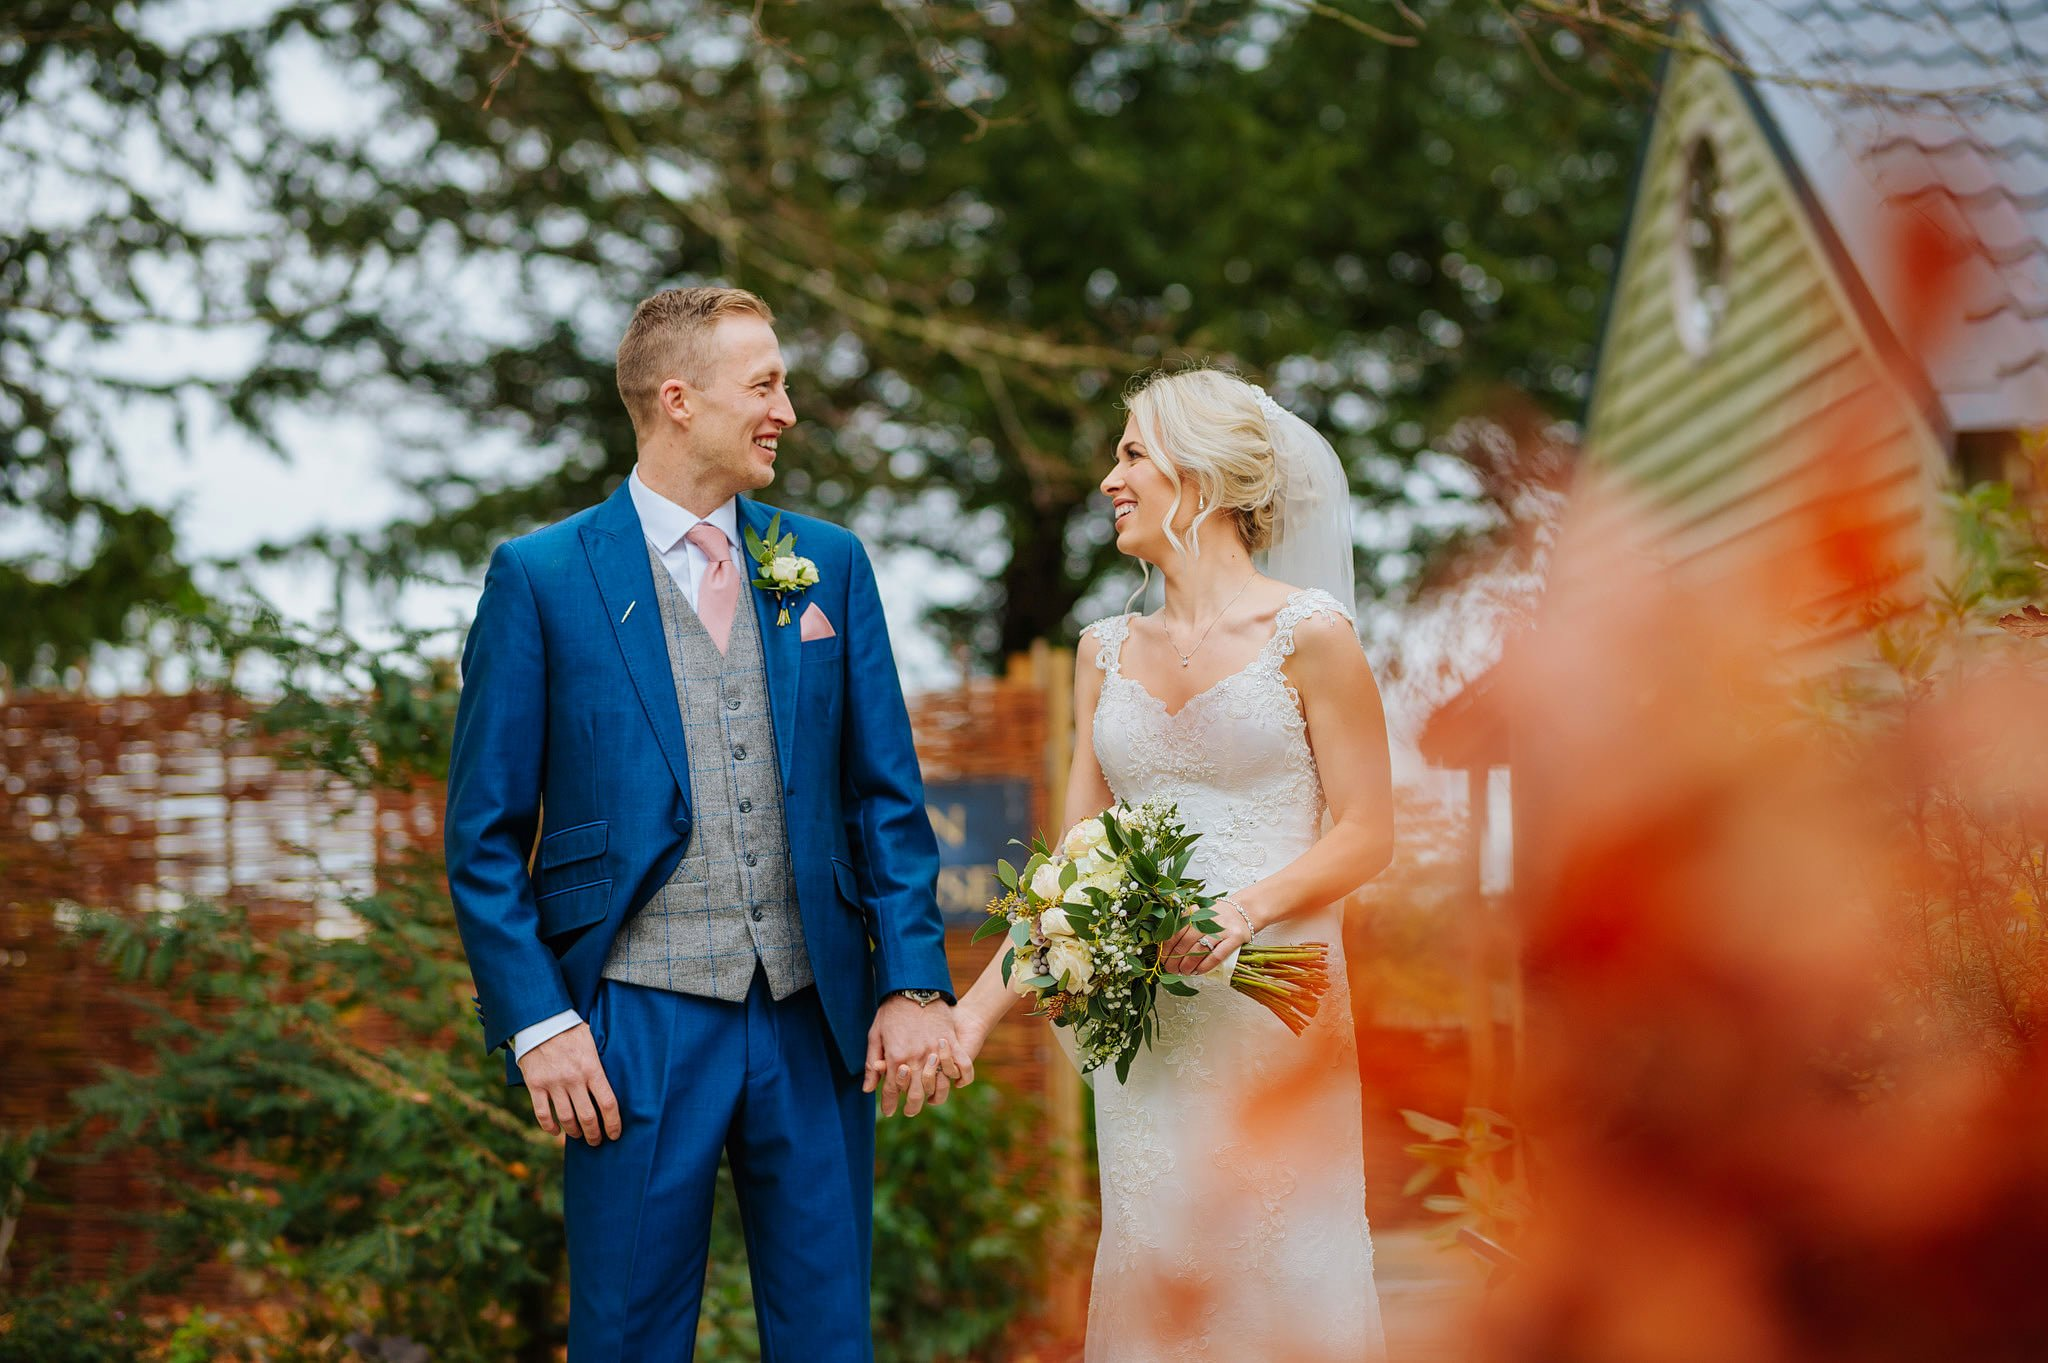 sigma 85mm art review wedding photography 120 - Sigma 85mm F1.4 ART review vs Wedding Photography